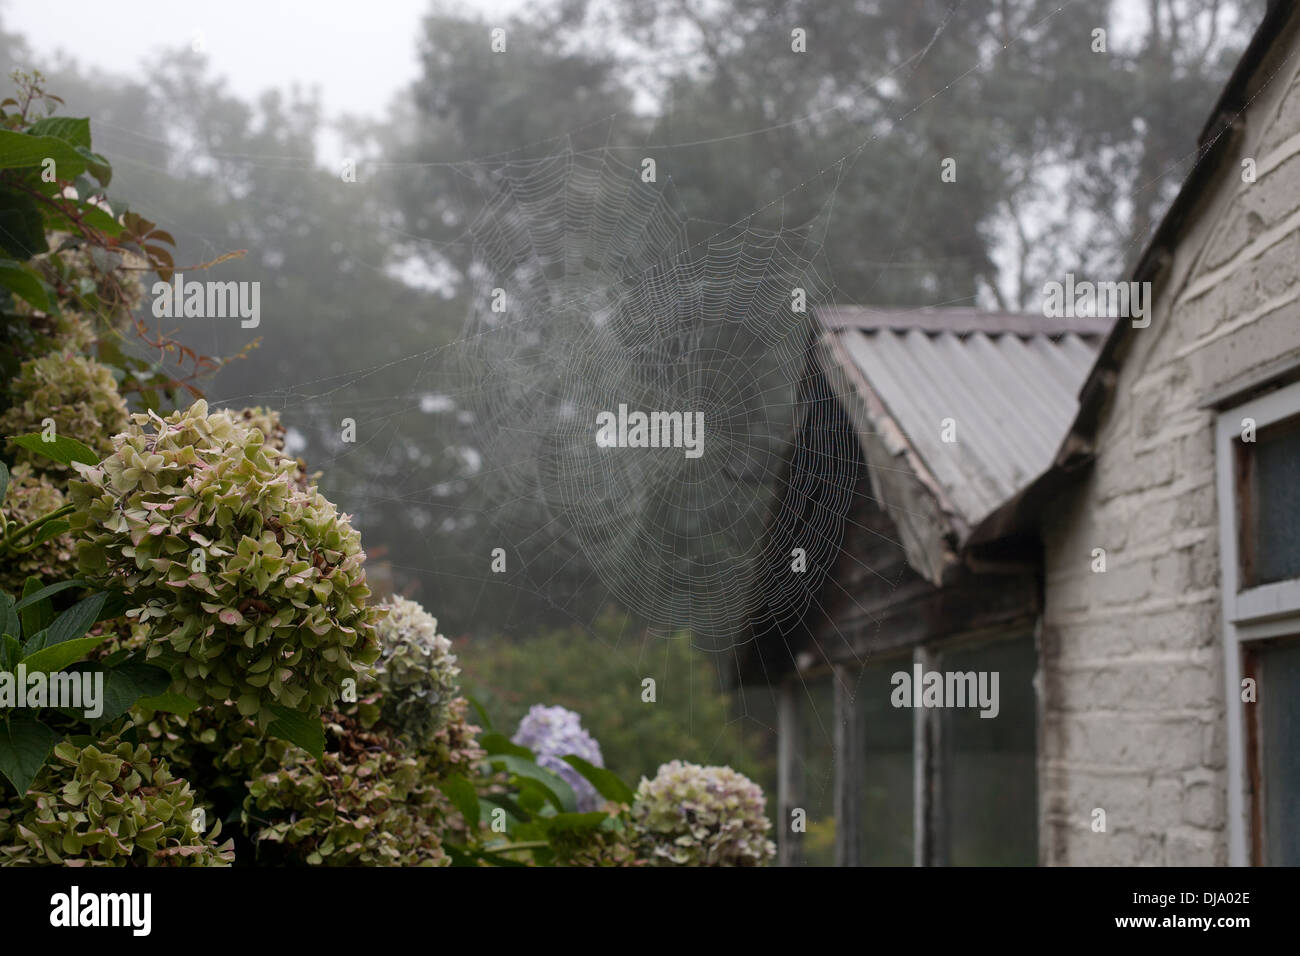 Large spiders webs, covered in misty dew drops. - Stock Image